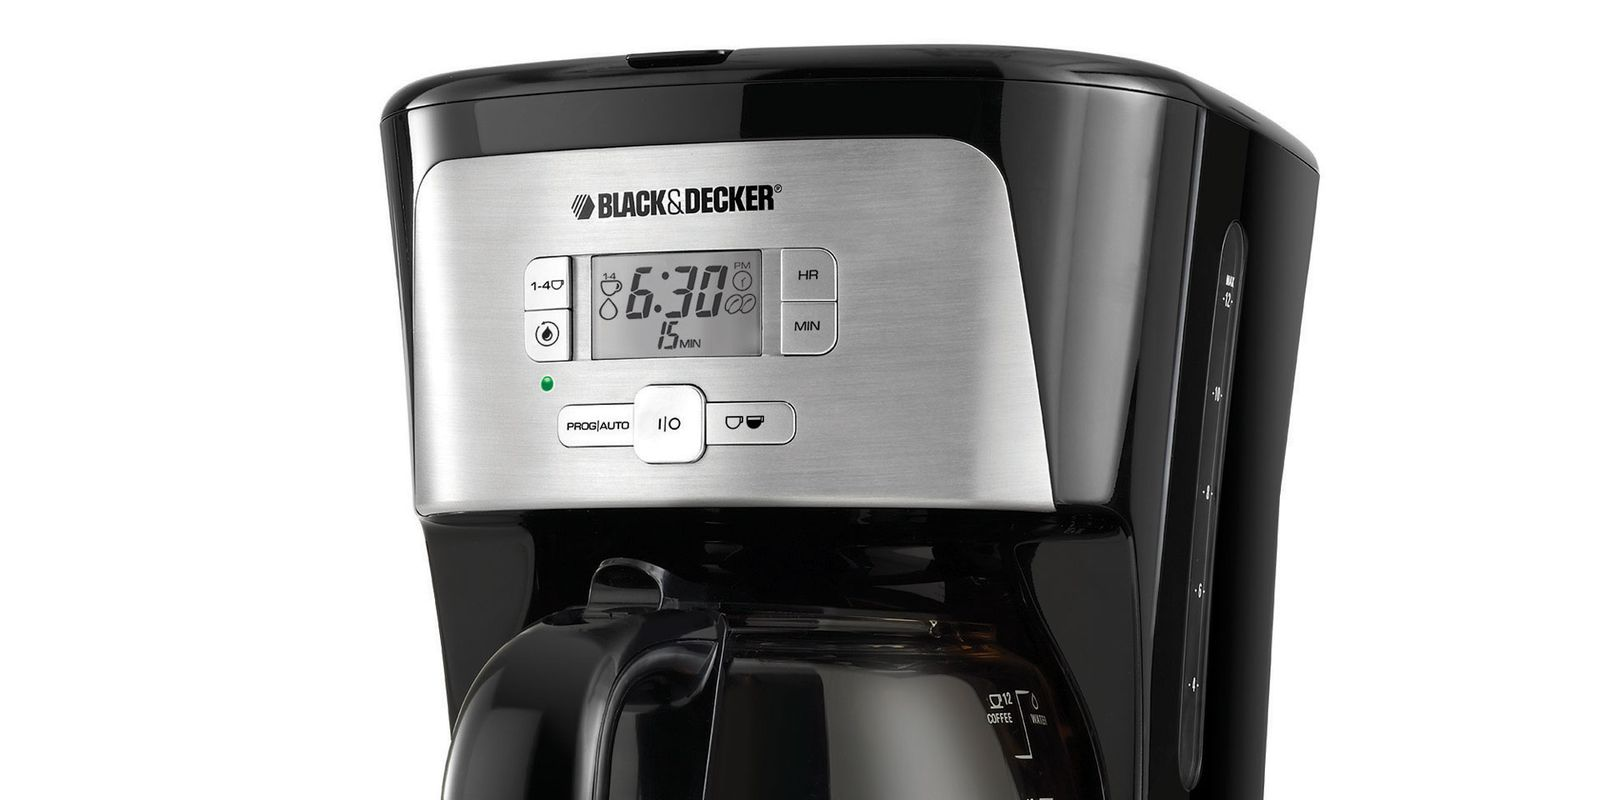 Black & Decker 12-Cup Programmable Coffee Maker #CM2020B Review